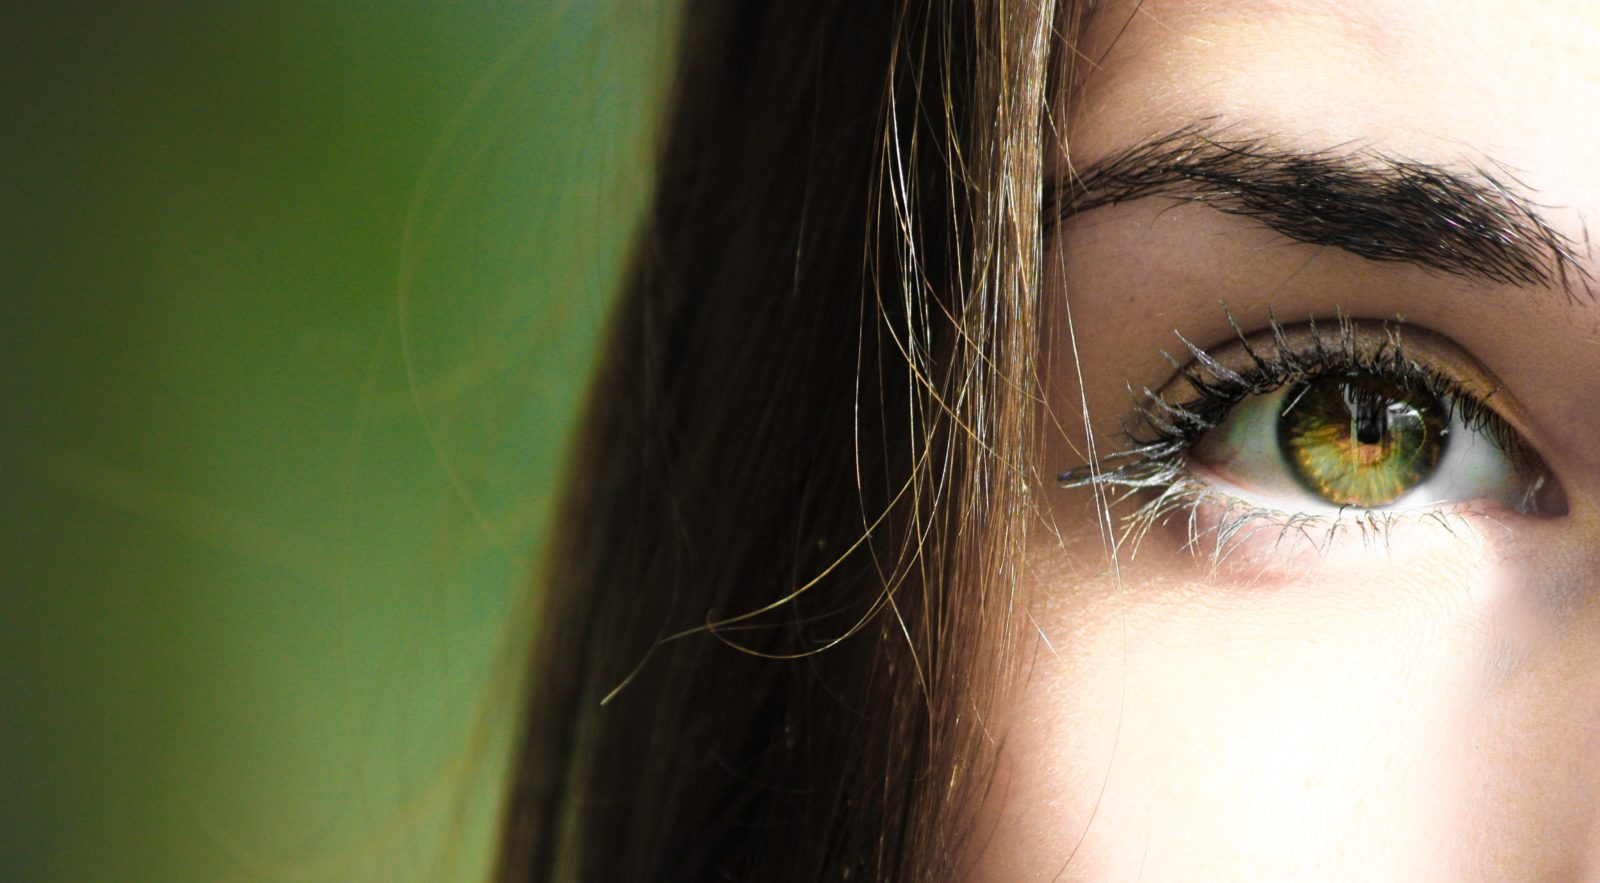 Can contact lenses get lost behind my eye?